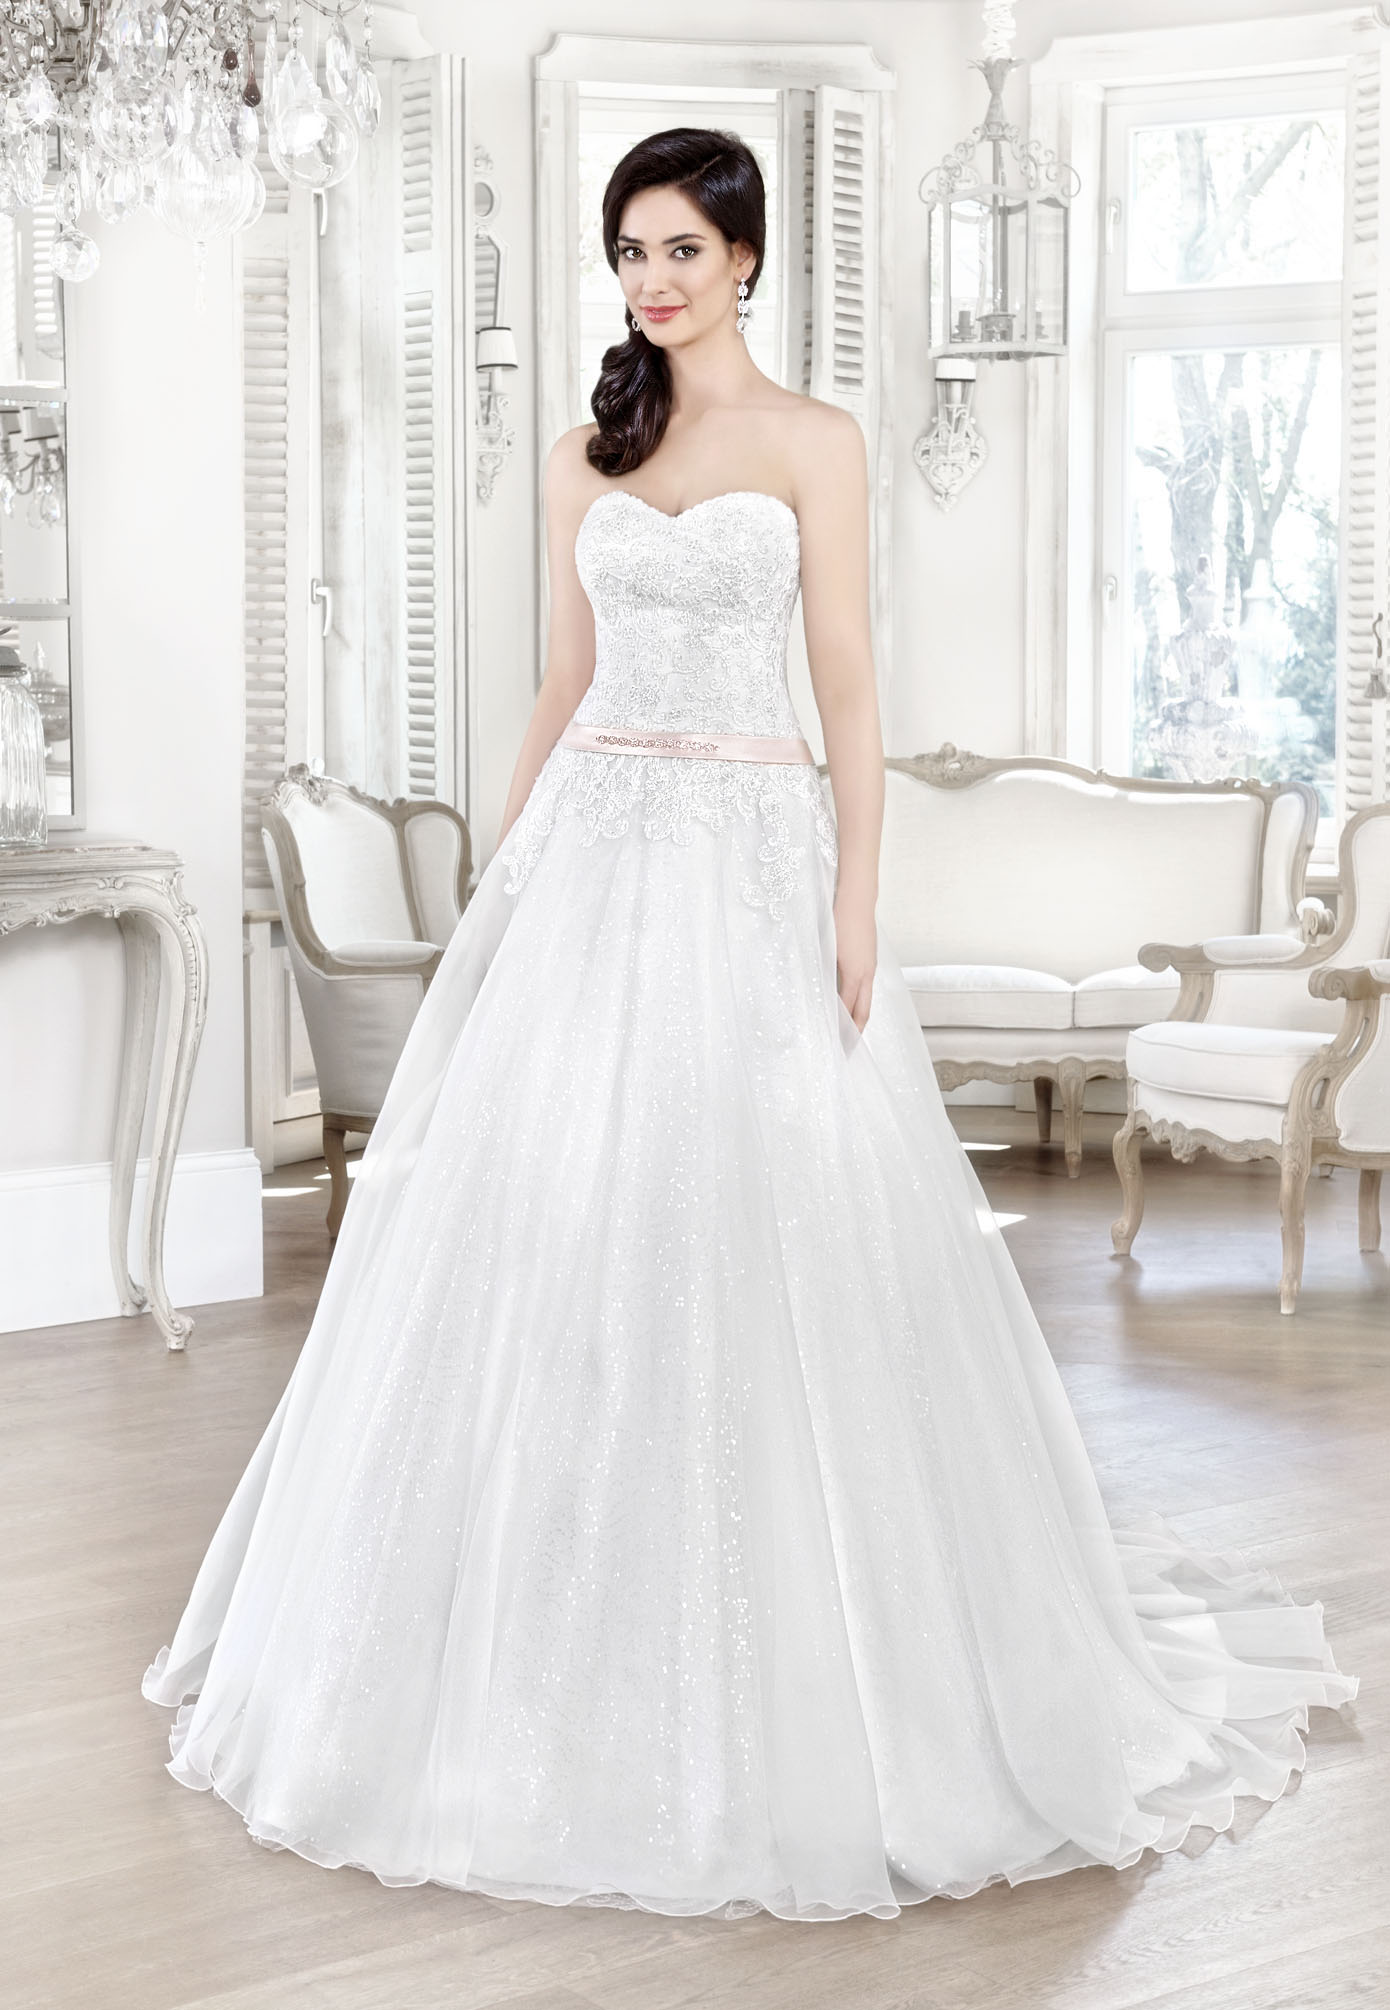 16049t agnes bridal dream 2017 wedding dresses agnes lace wedding dresses plus size. Black Bedroom Furniture Sets. Home Design Ideas